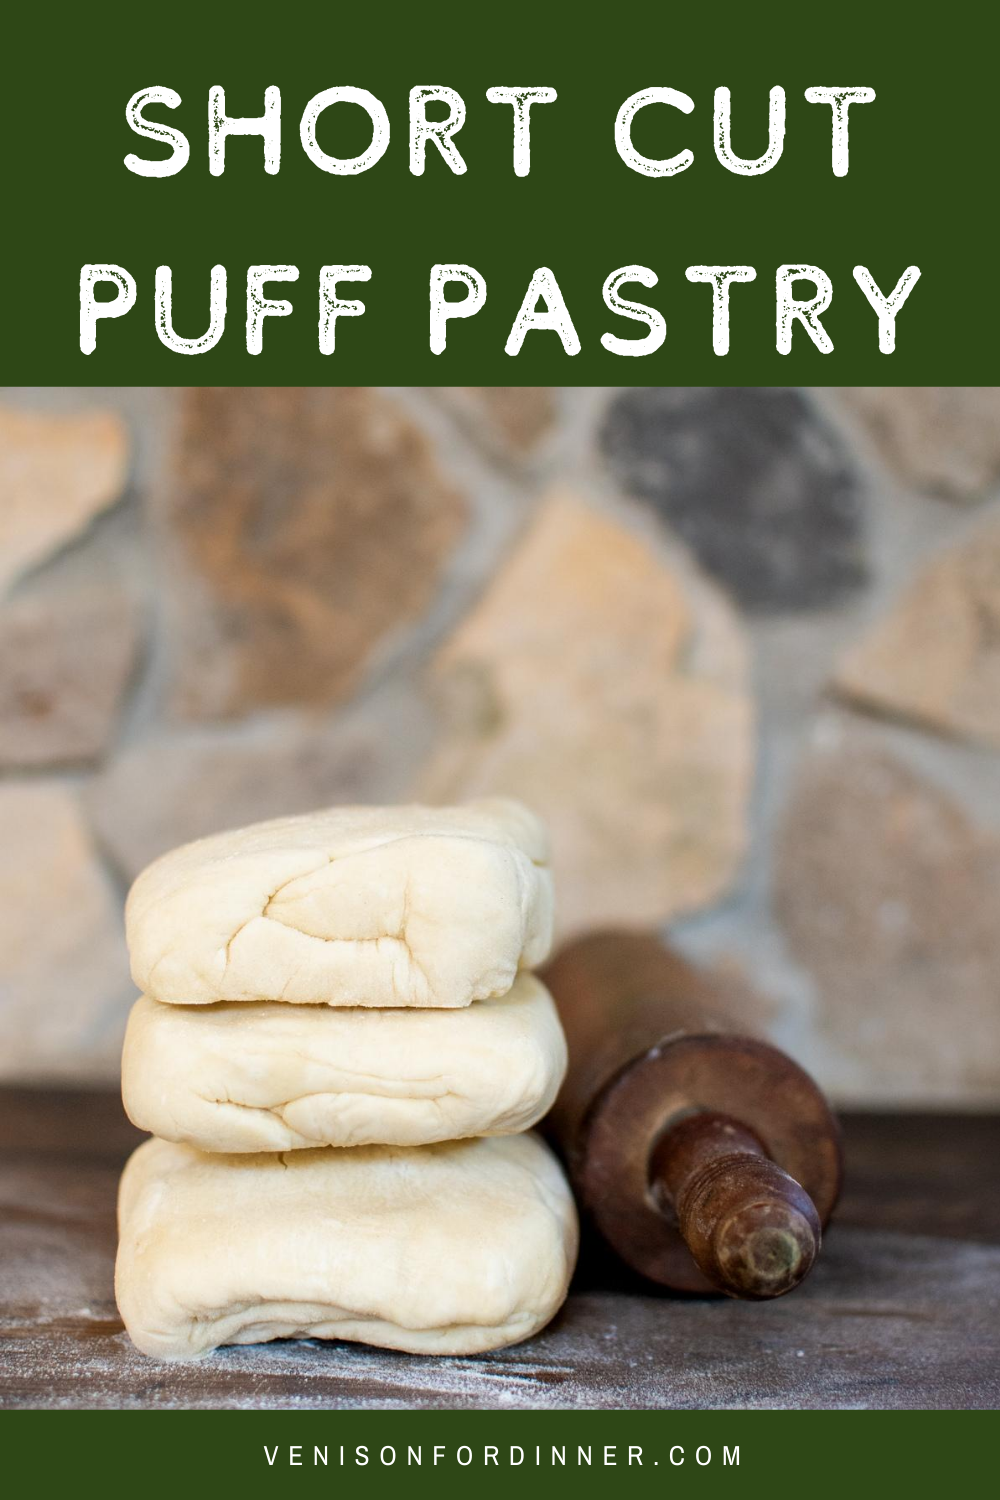 Shortcut puff pastry homemade